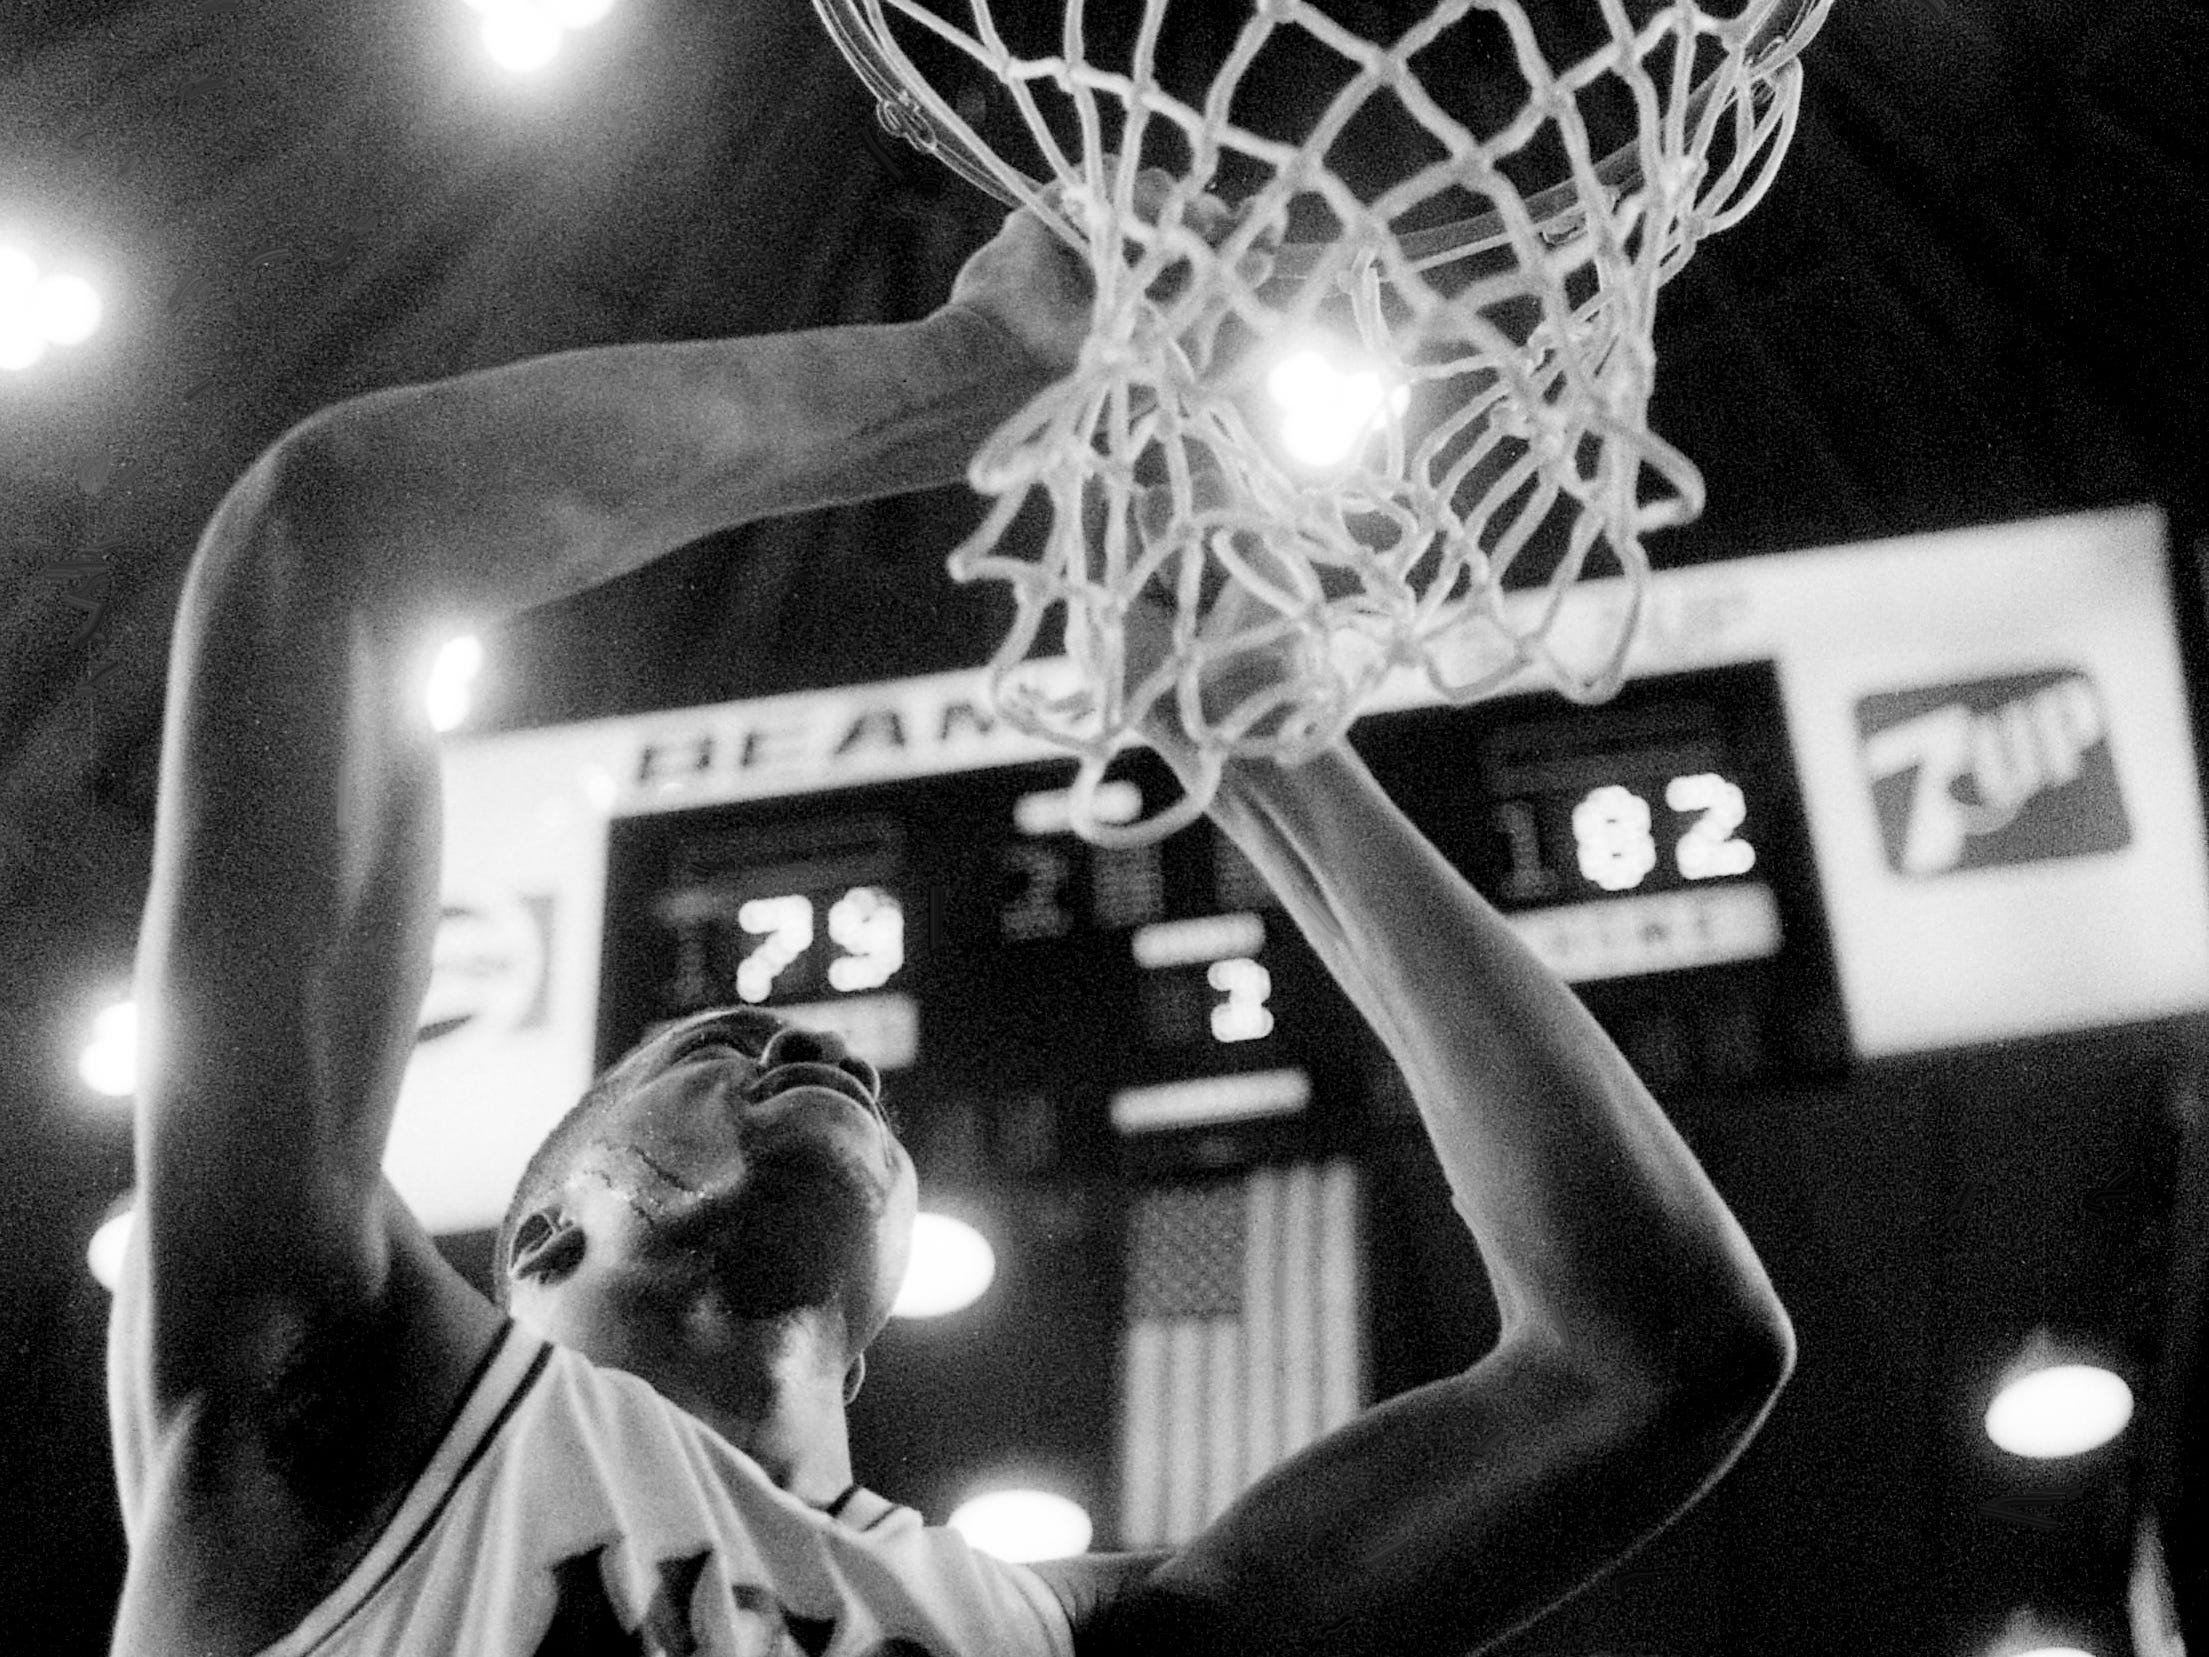 Middle Tennessee State's Chris Ingram takes his turn at snipping down the nets after their dramatic 82-79 come-from-behind victory over Austin Peay at Municipal Auditorium on March 9, 1989. MTSU improved their record to 22-7 and earned the league's automatic bid to the NCAA Tournament.